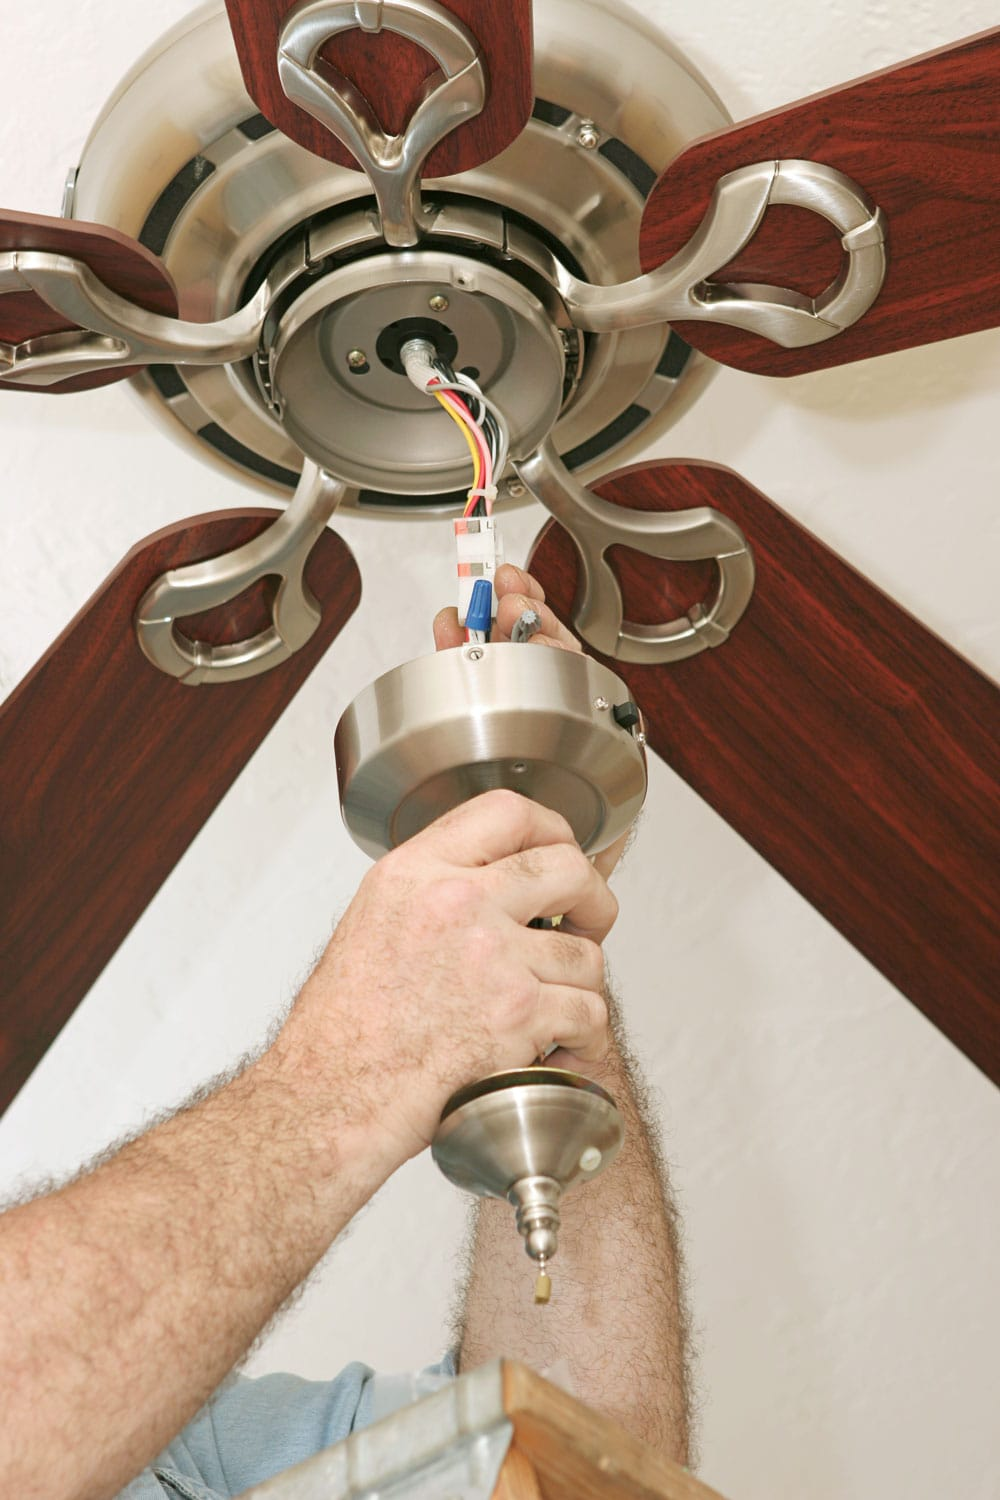 An electrician wiring up a ceiling fan. All work is being performed to code by a licensed master electrician